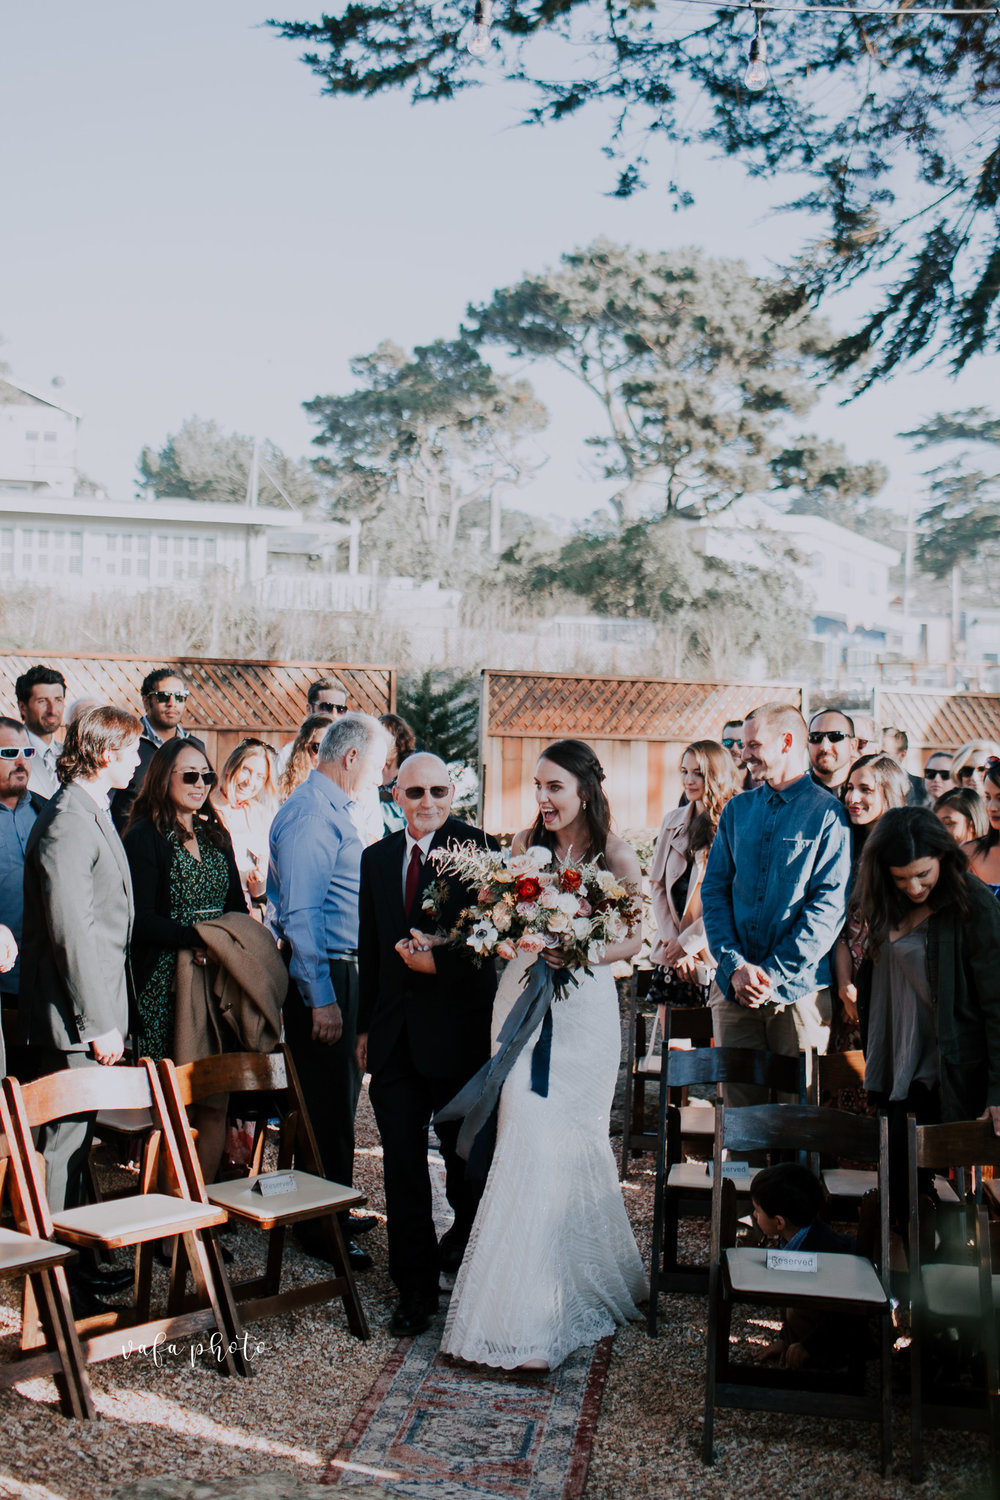 Backyard-Wedding-Montara-California-Megan-Josh-Vafa-Photo-511.jpg